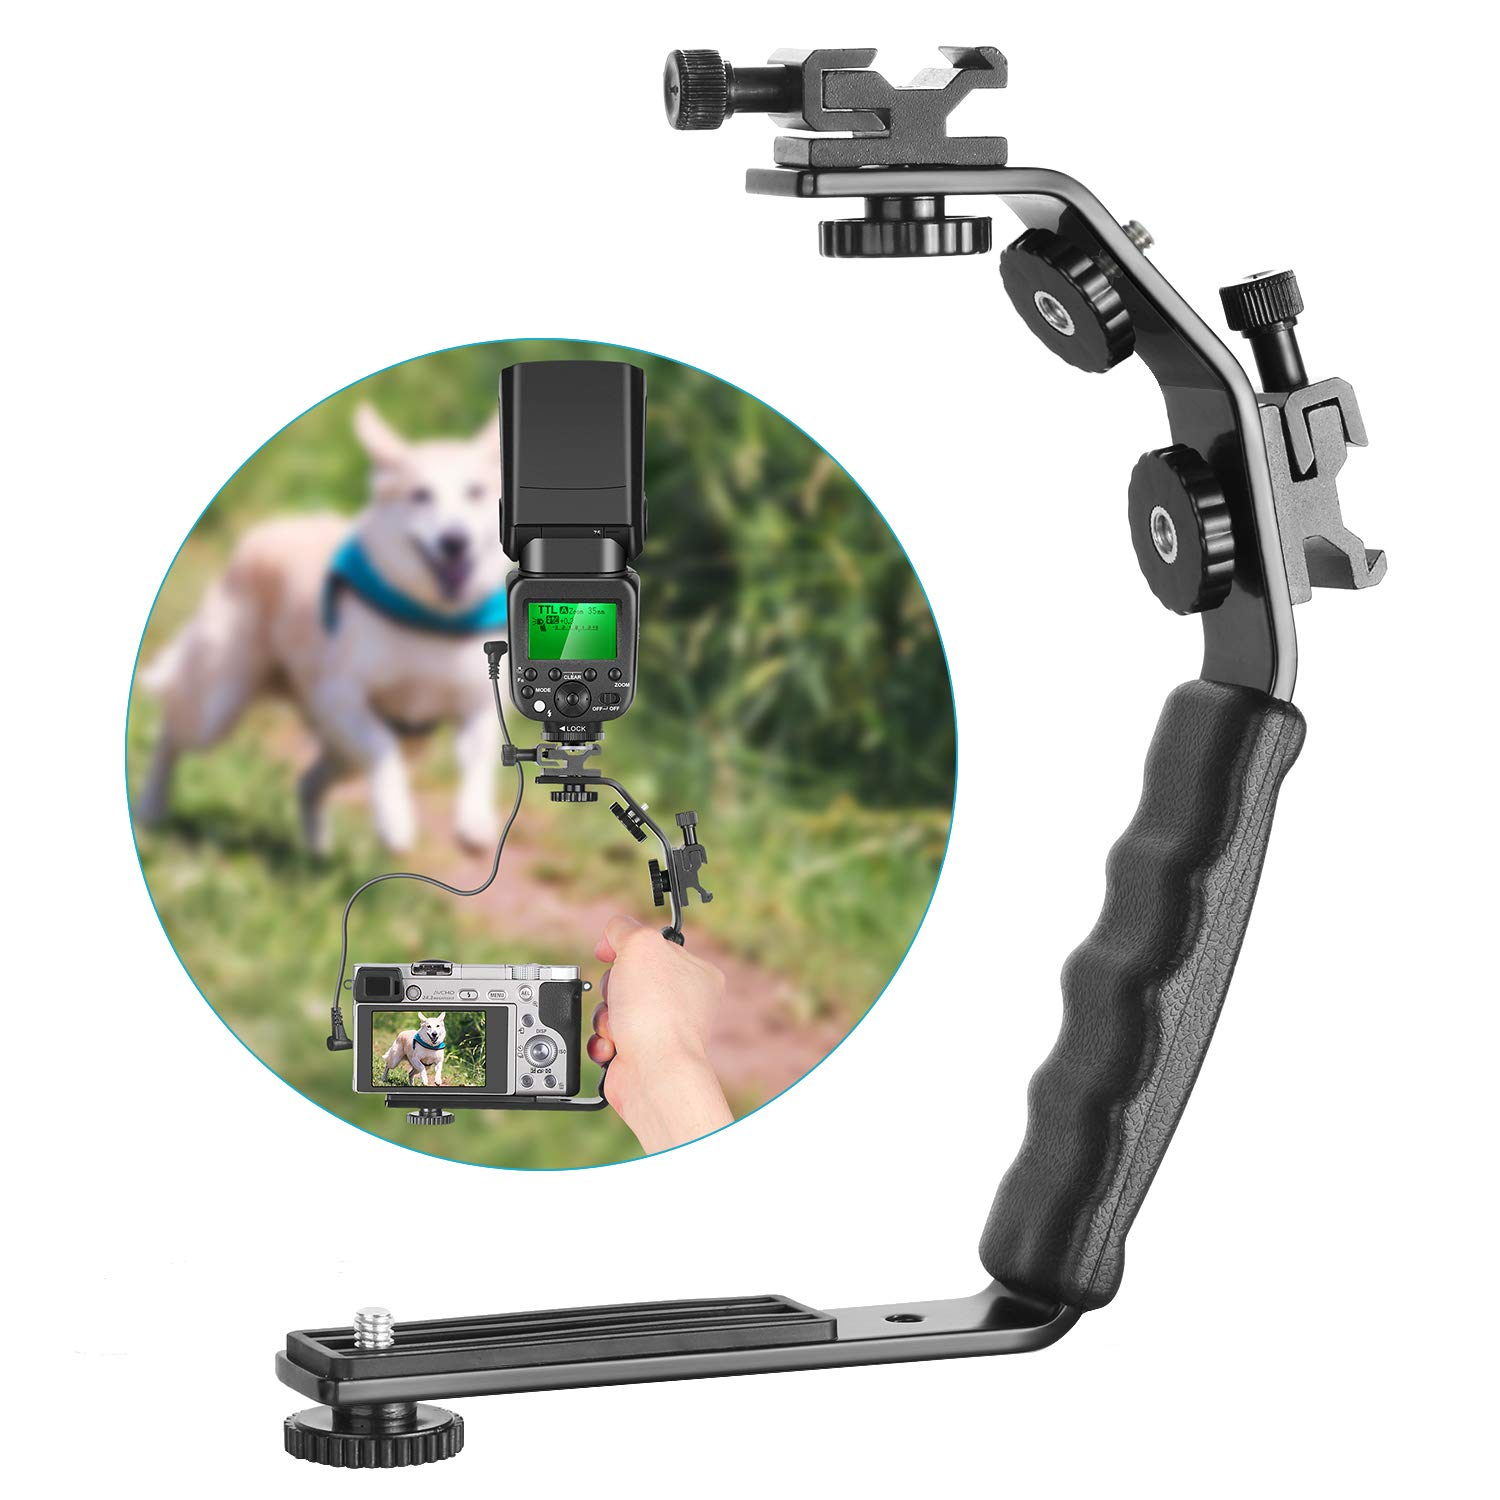 Neewer Camera Video L-Shape Flash Bracket Dual Flash Cold Shoe Mount 1/4 inches Tripod Screw Versatile Handheld Camera Camcorder Video Shooting Product Photography by Neewer